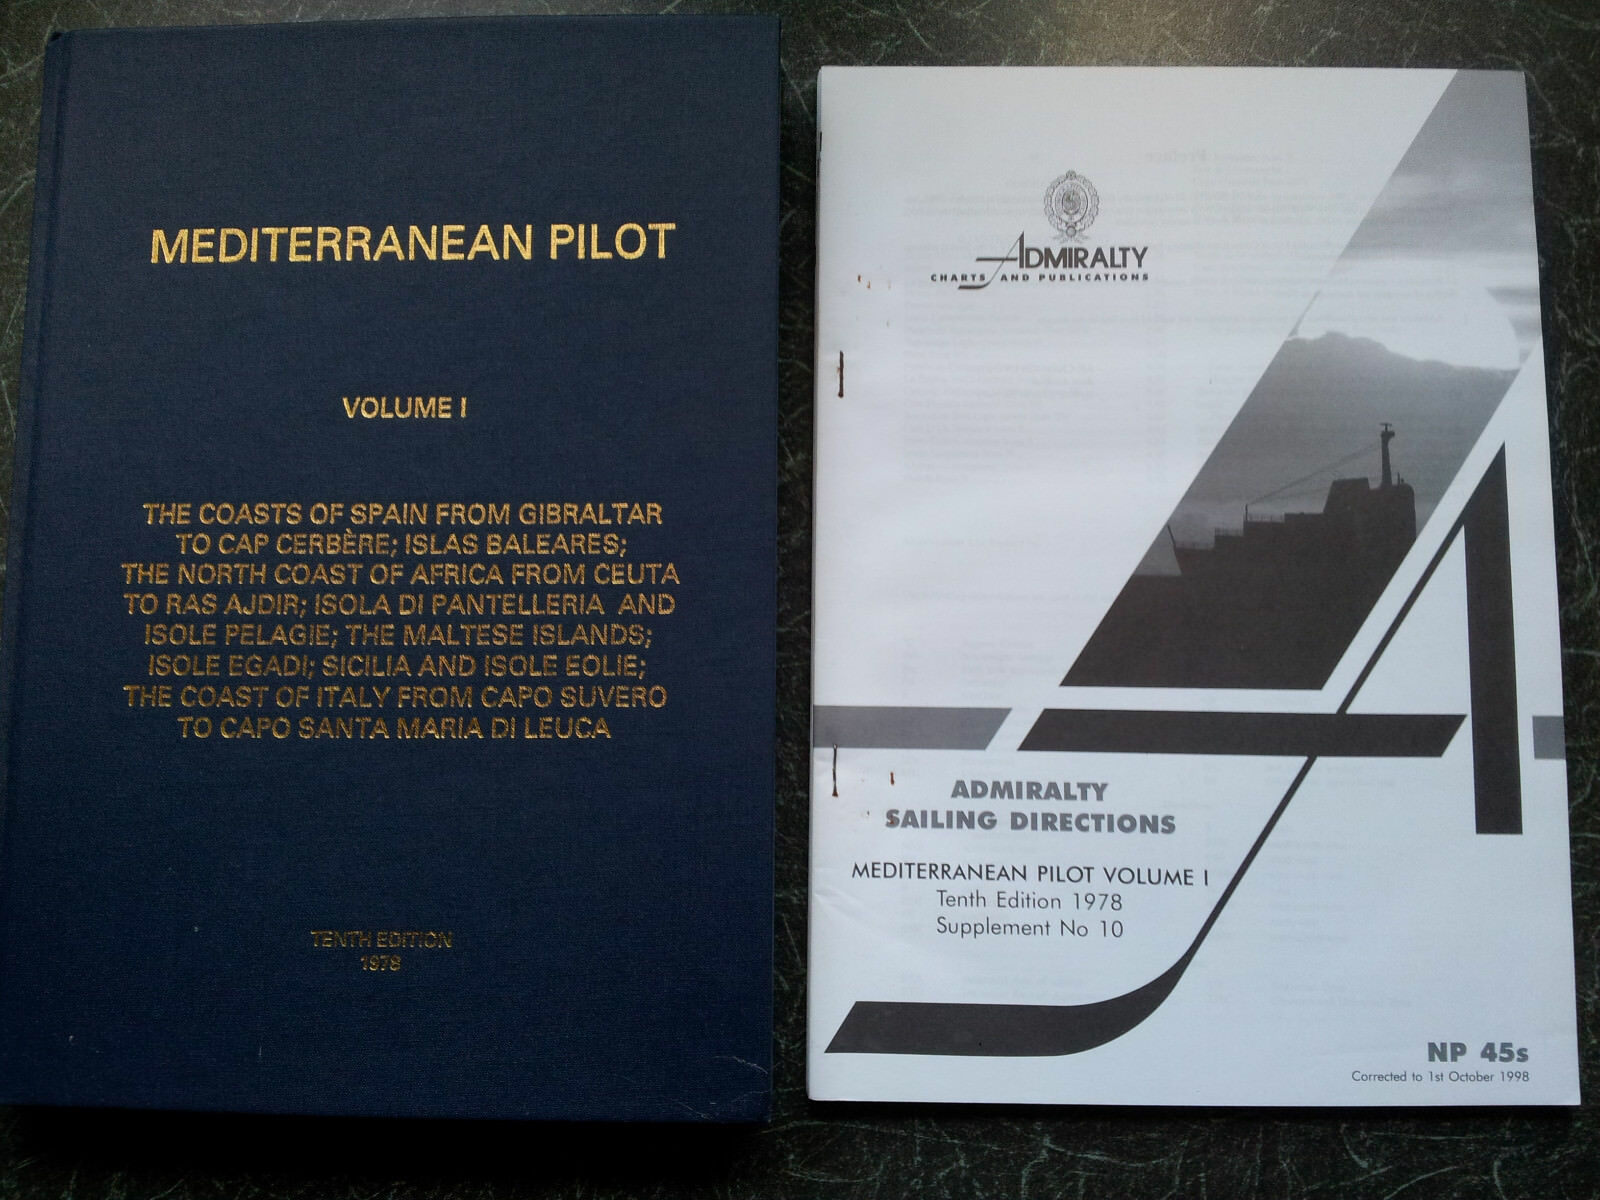 Mediterranean Pilot volume 1 tenth edition 1978 corrected to 1998